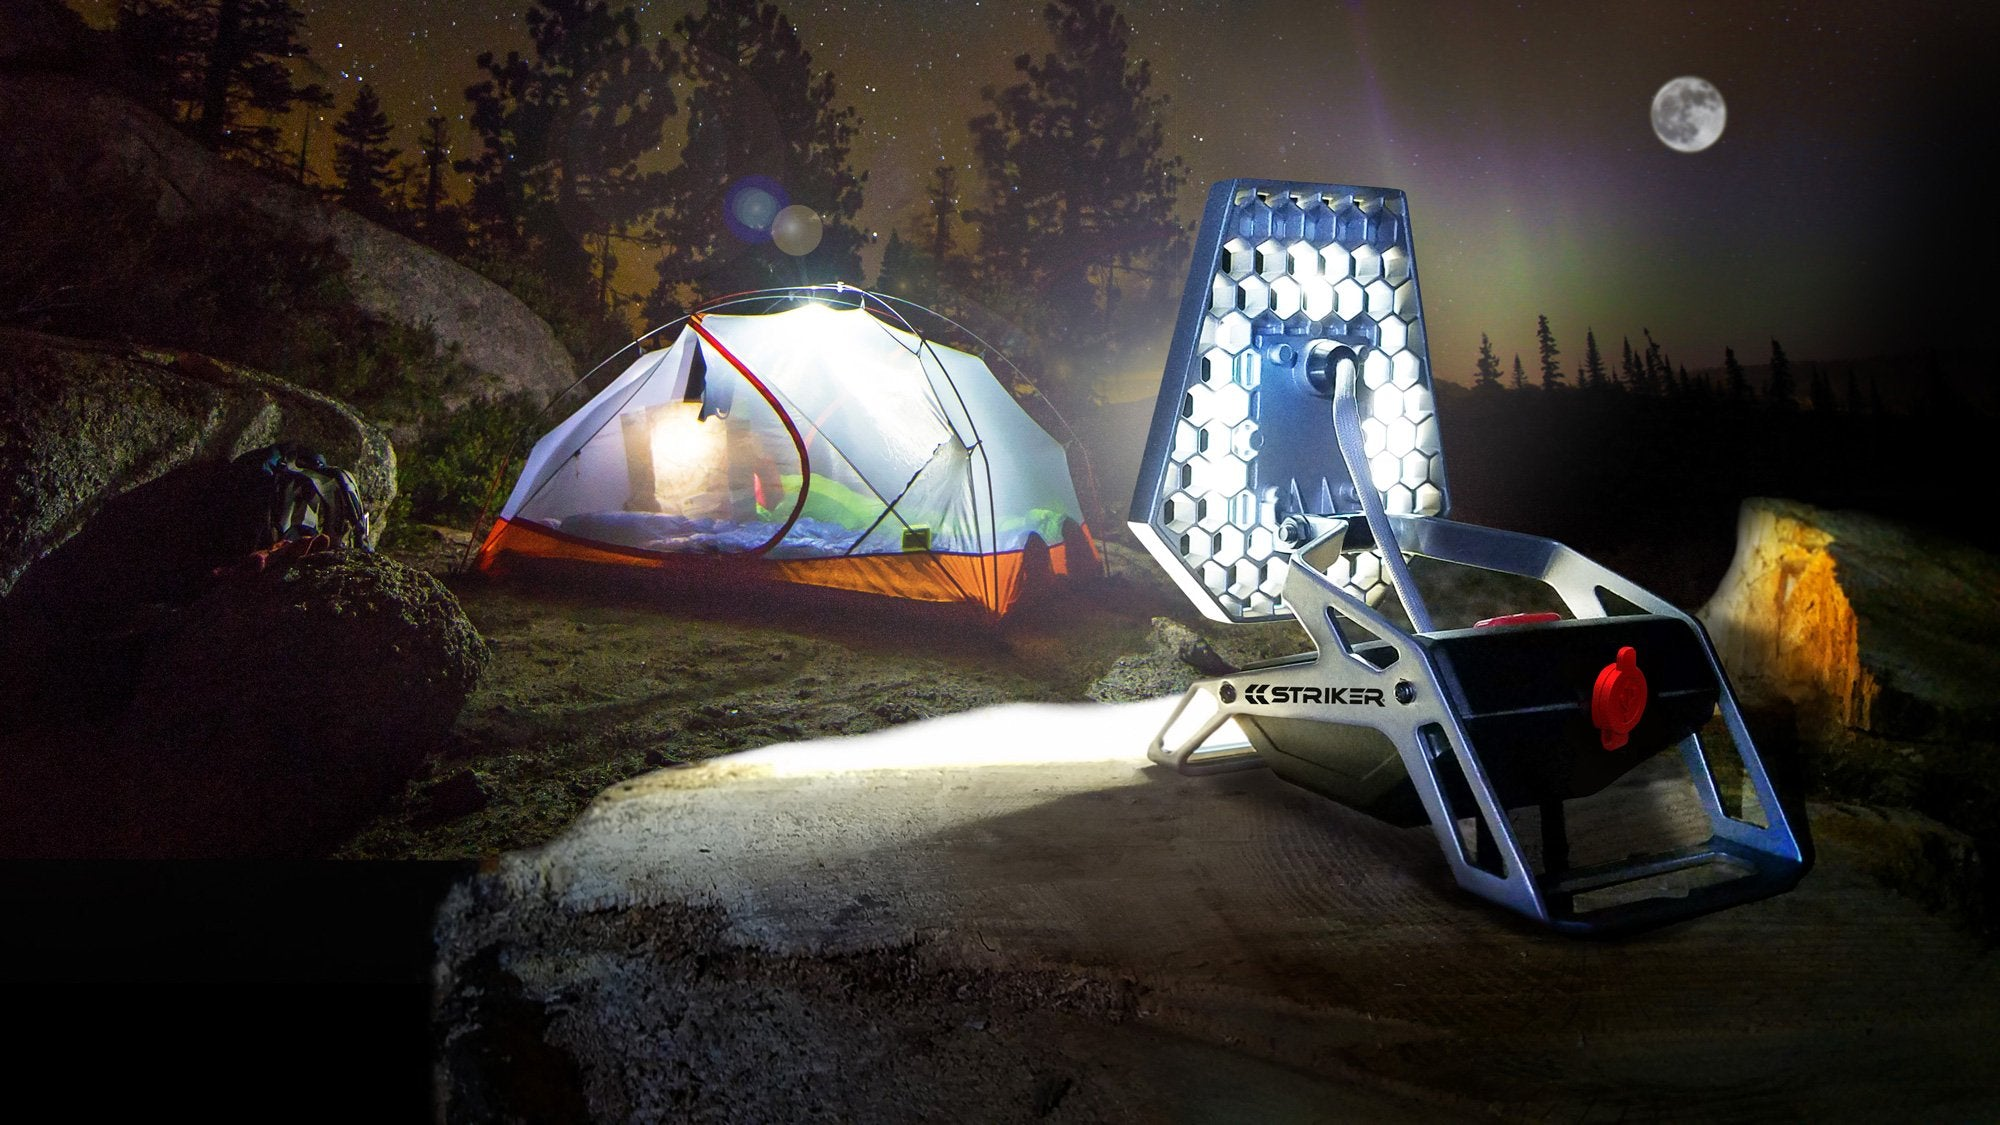 Striker Mobile Task Light for Camping